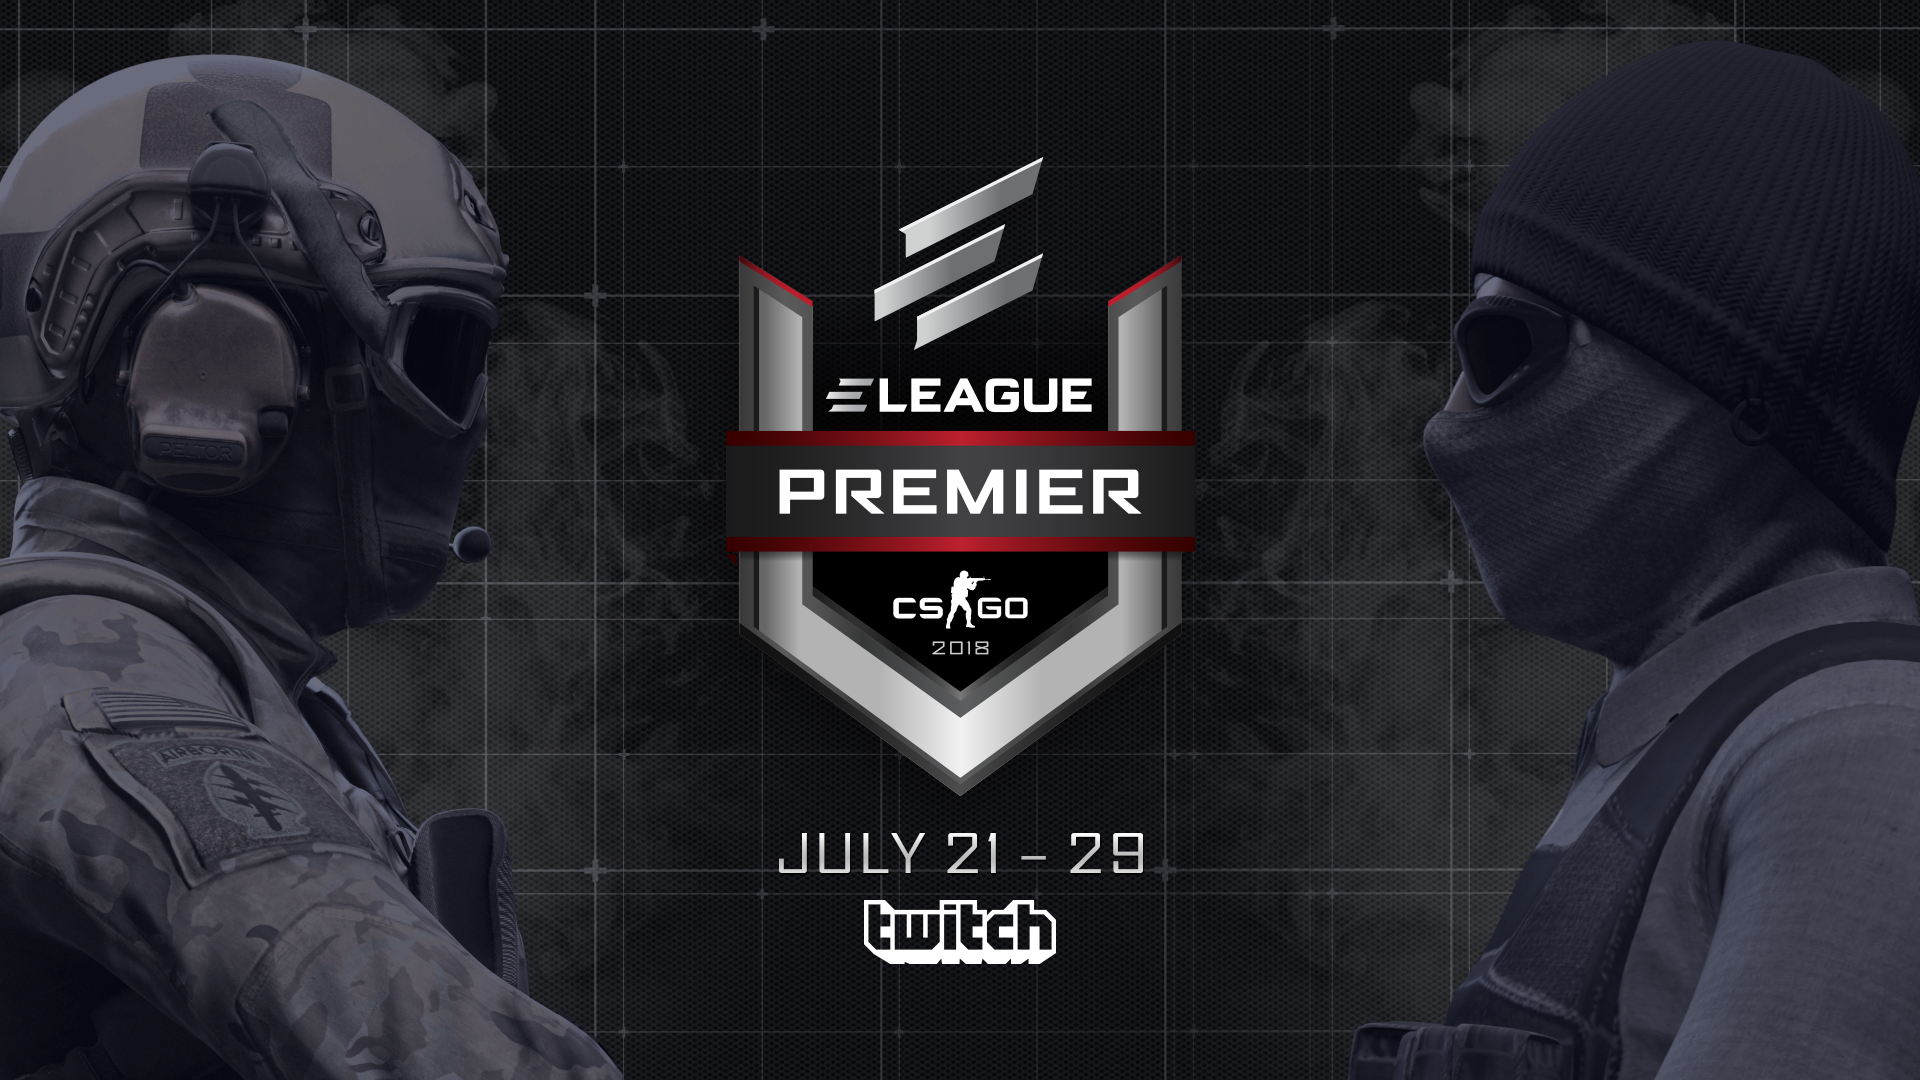 ELeague Premier 2018 Announcement Image